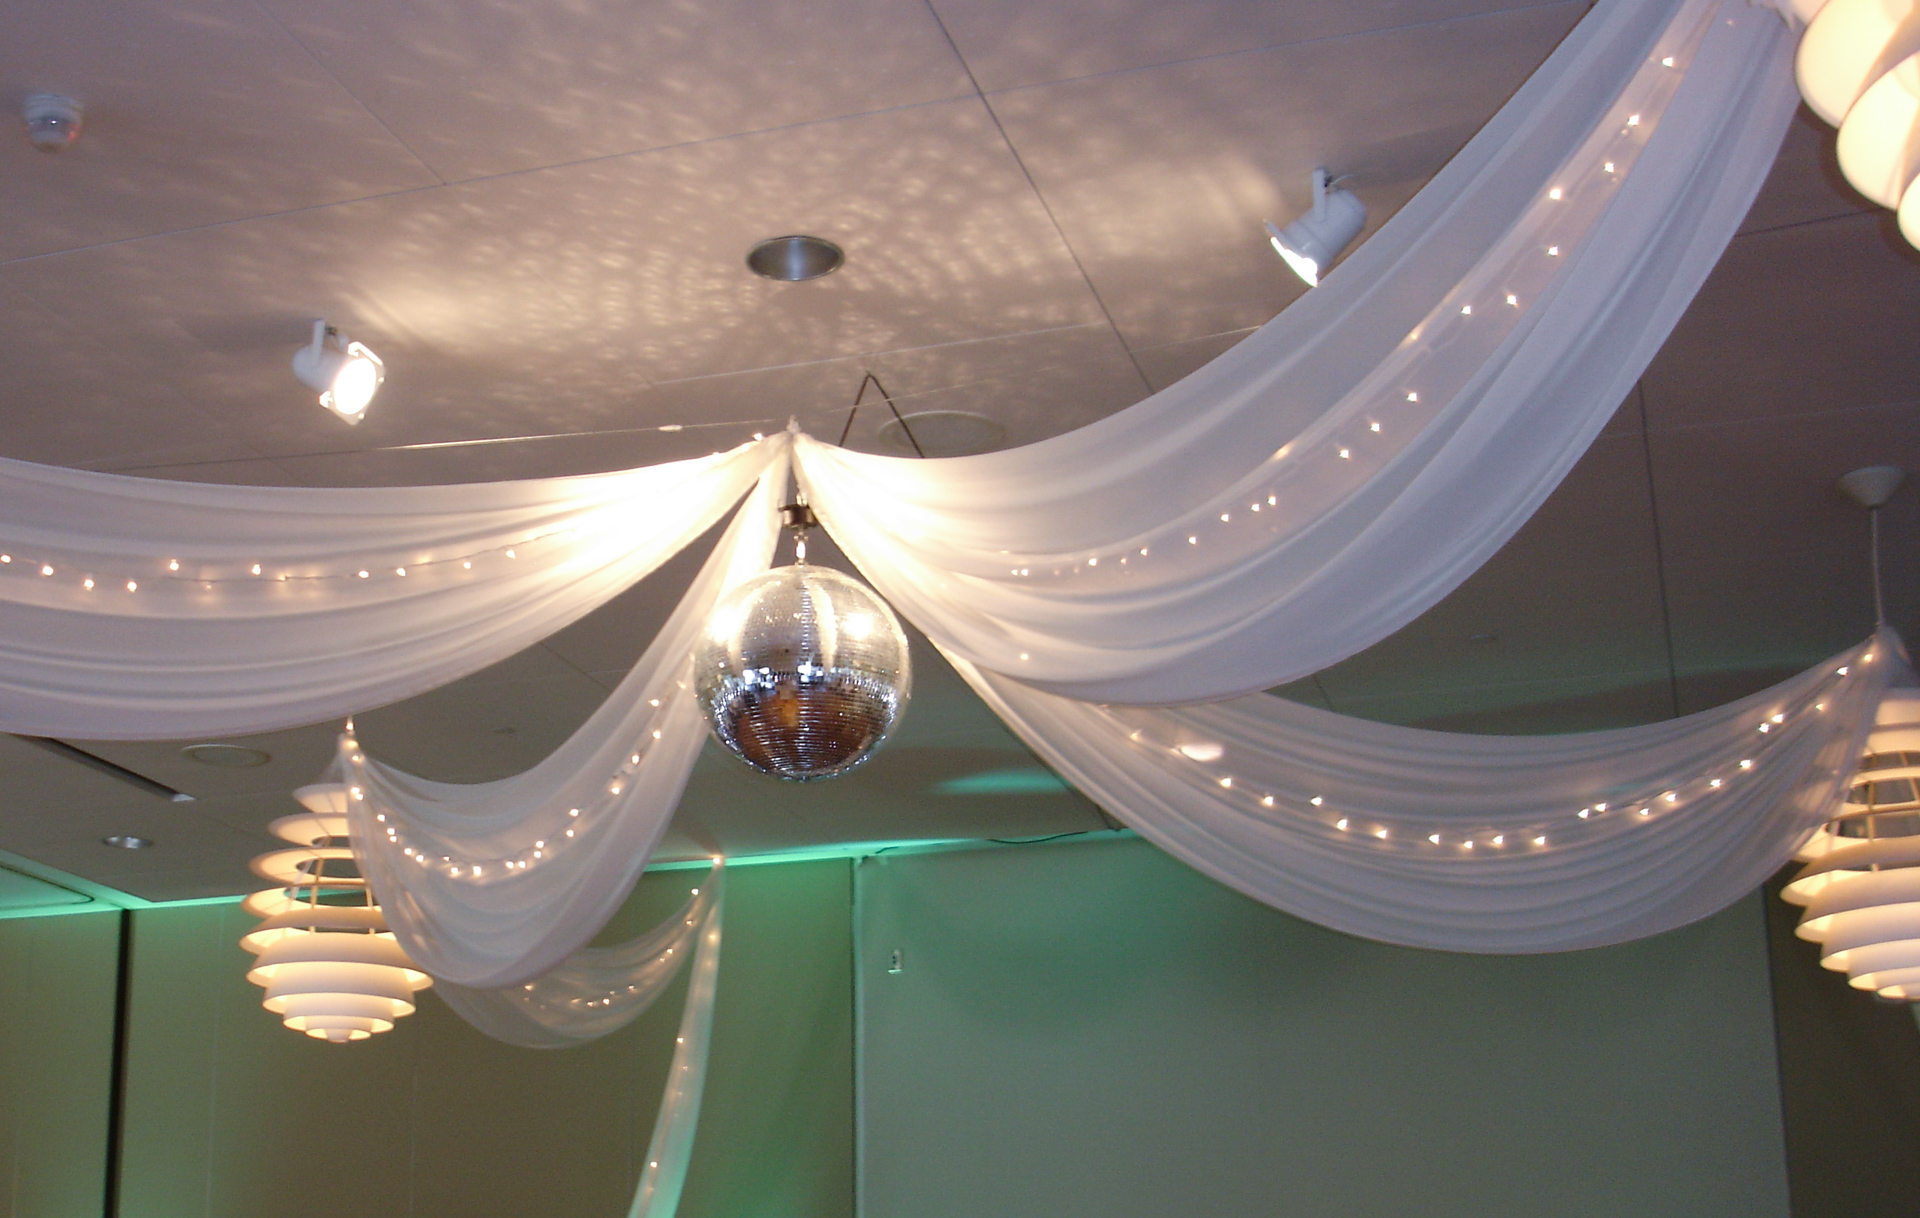 Disco Ball, Ceiling Draping with Tiffany Blue Accents.